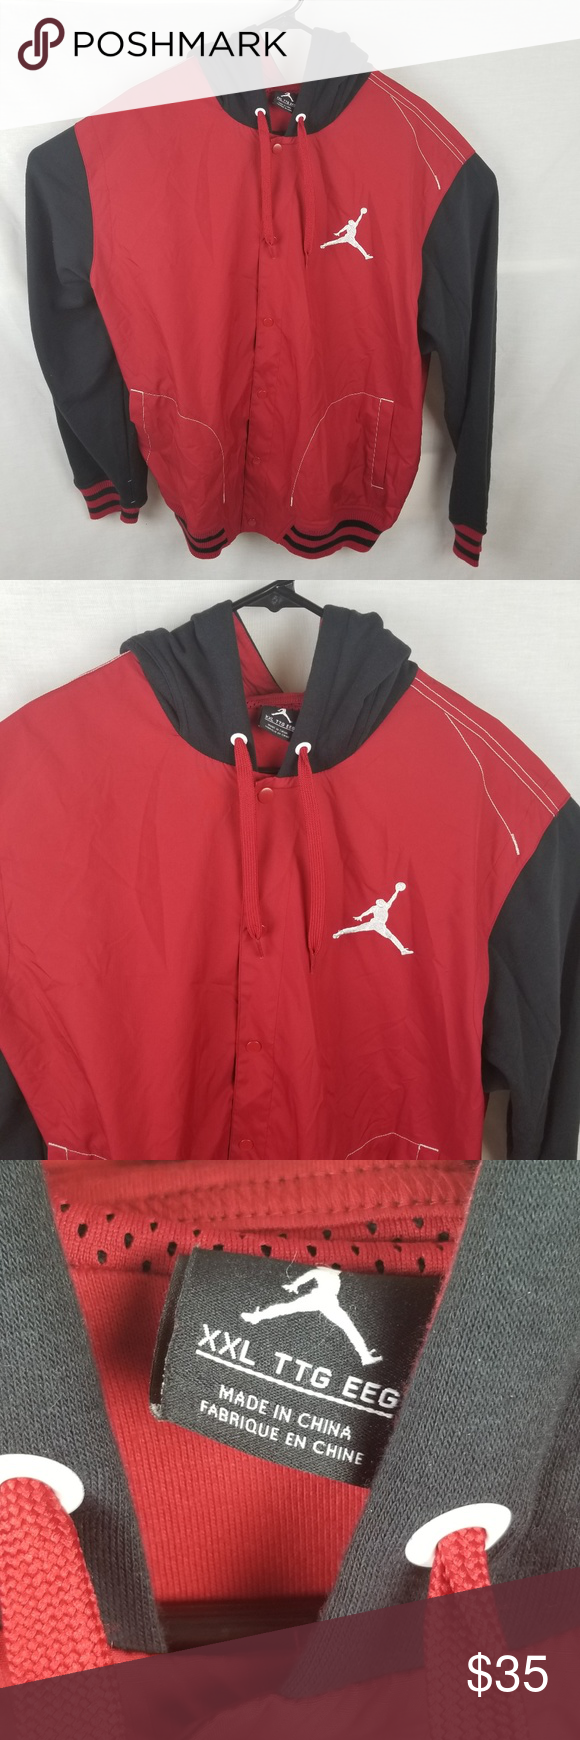 921375885220f3 NIke Air Jordan Retro Red Black Button Down Jacket Gently used XXl Red Black  Jordan Button Down Hooded Jacket . No flaws rips or holes and zipper works  ...